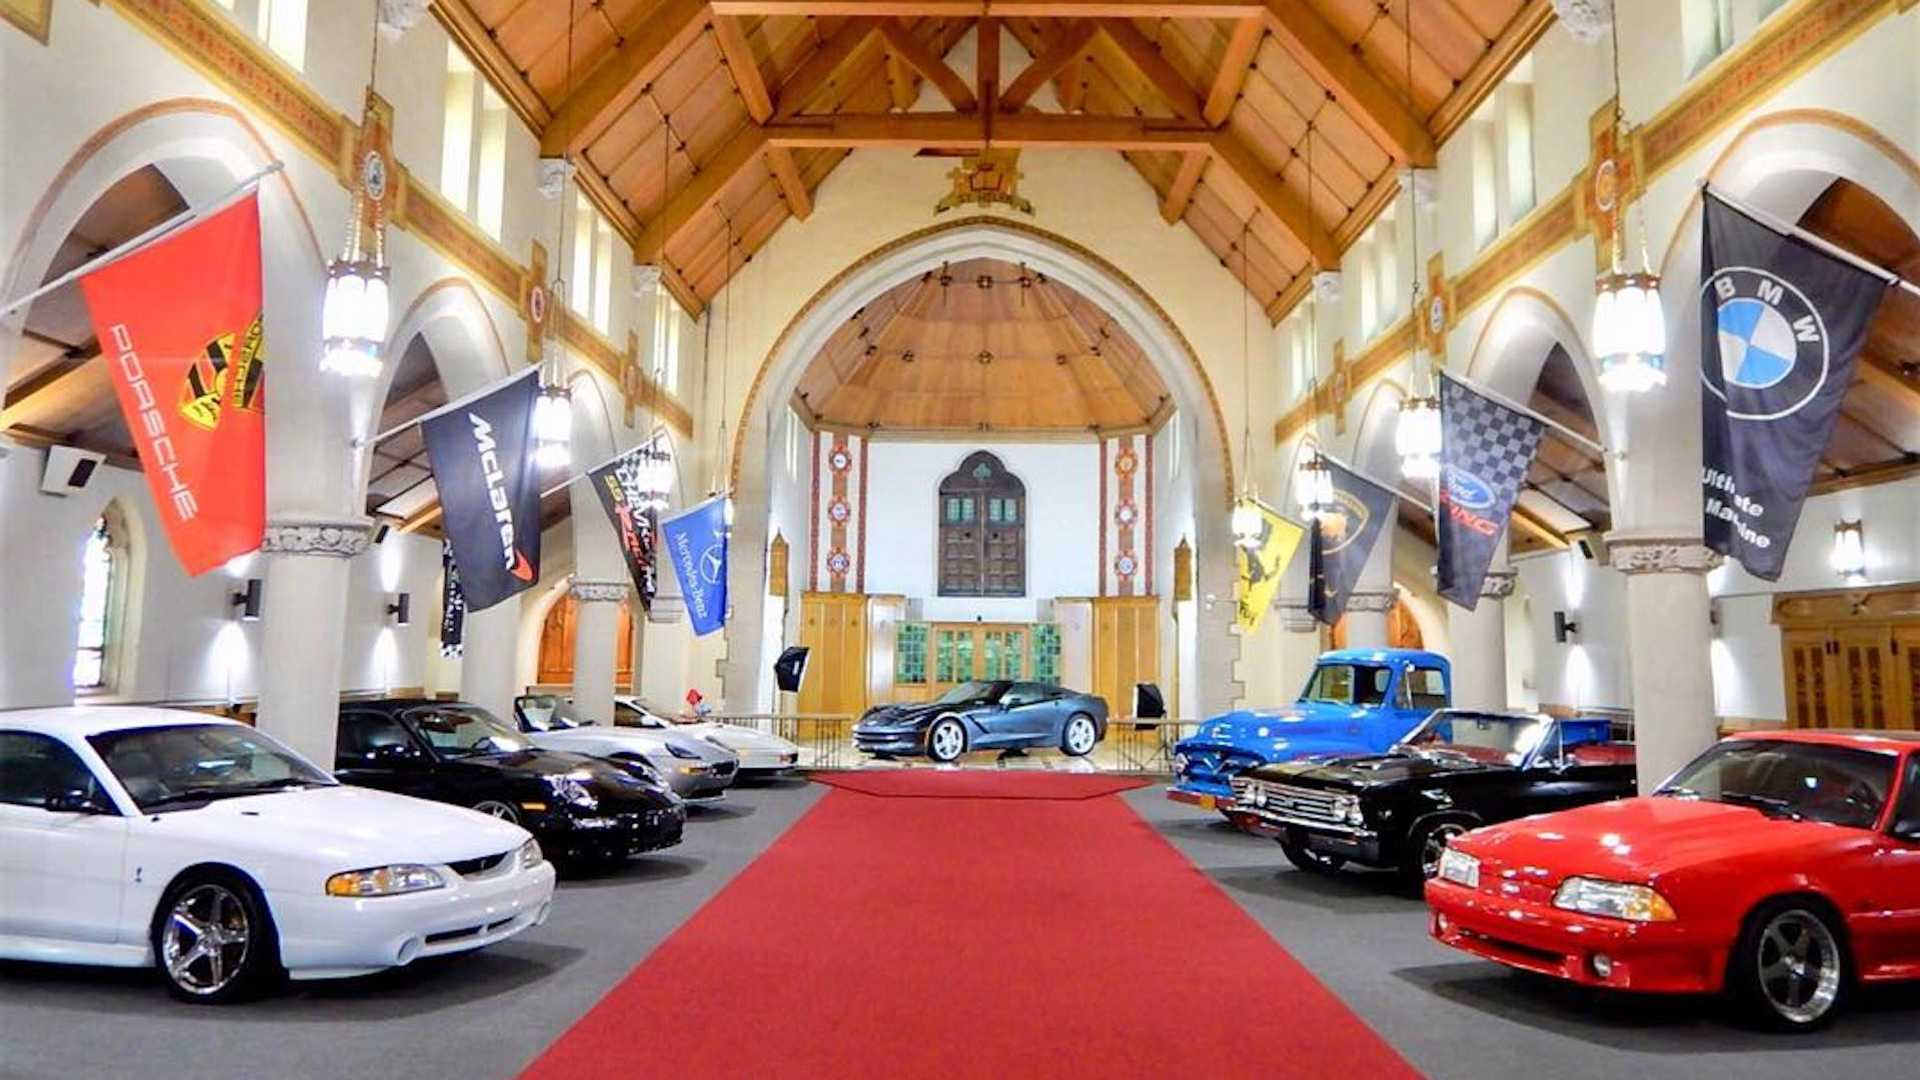 The Holy Grail Garage Is A Church-Turned-Car-Storage Temple